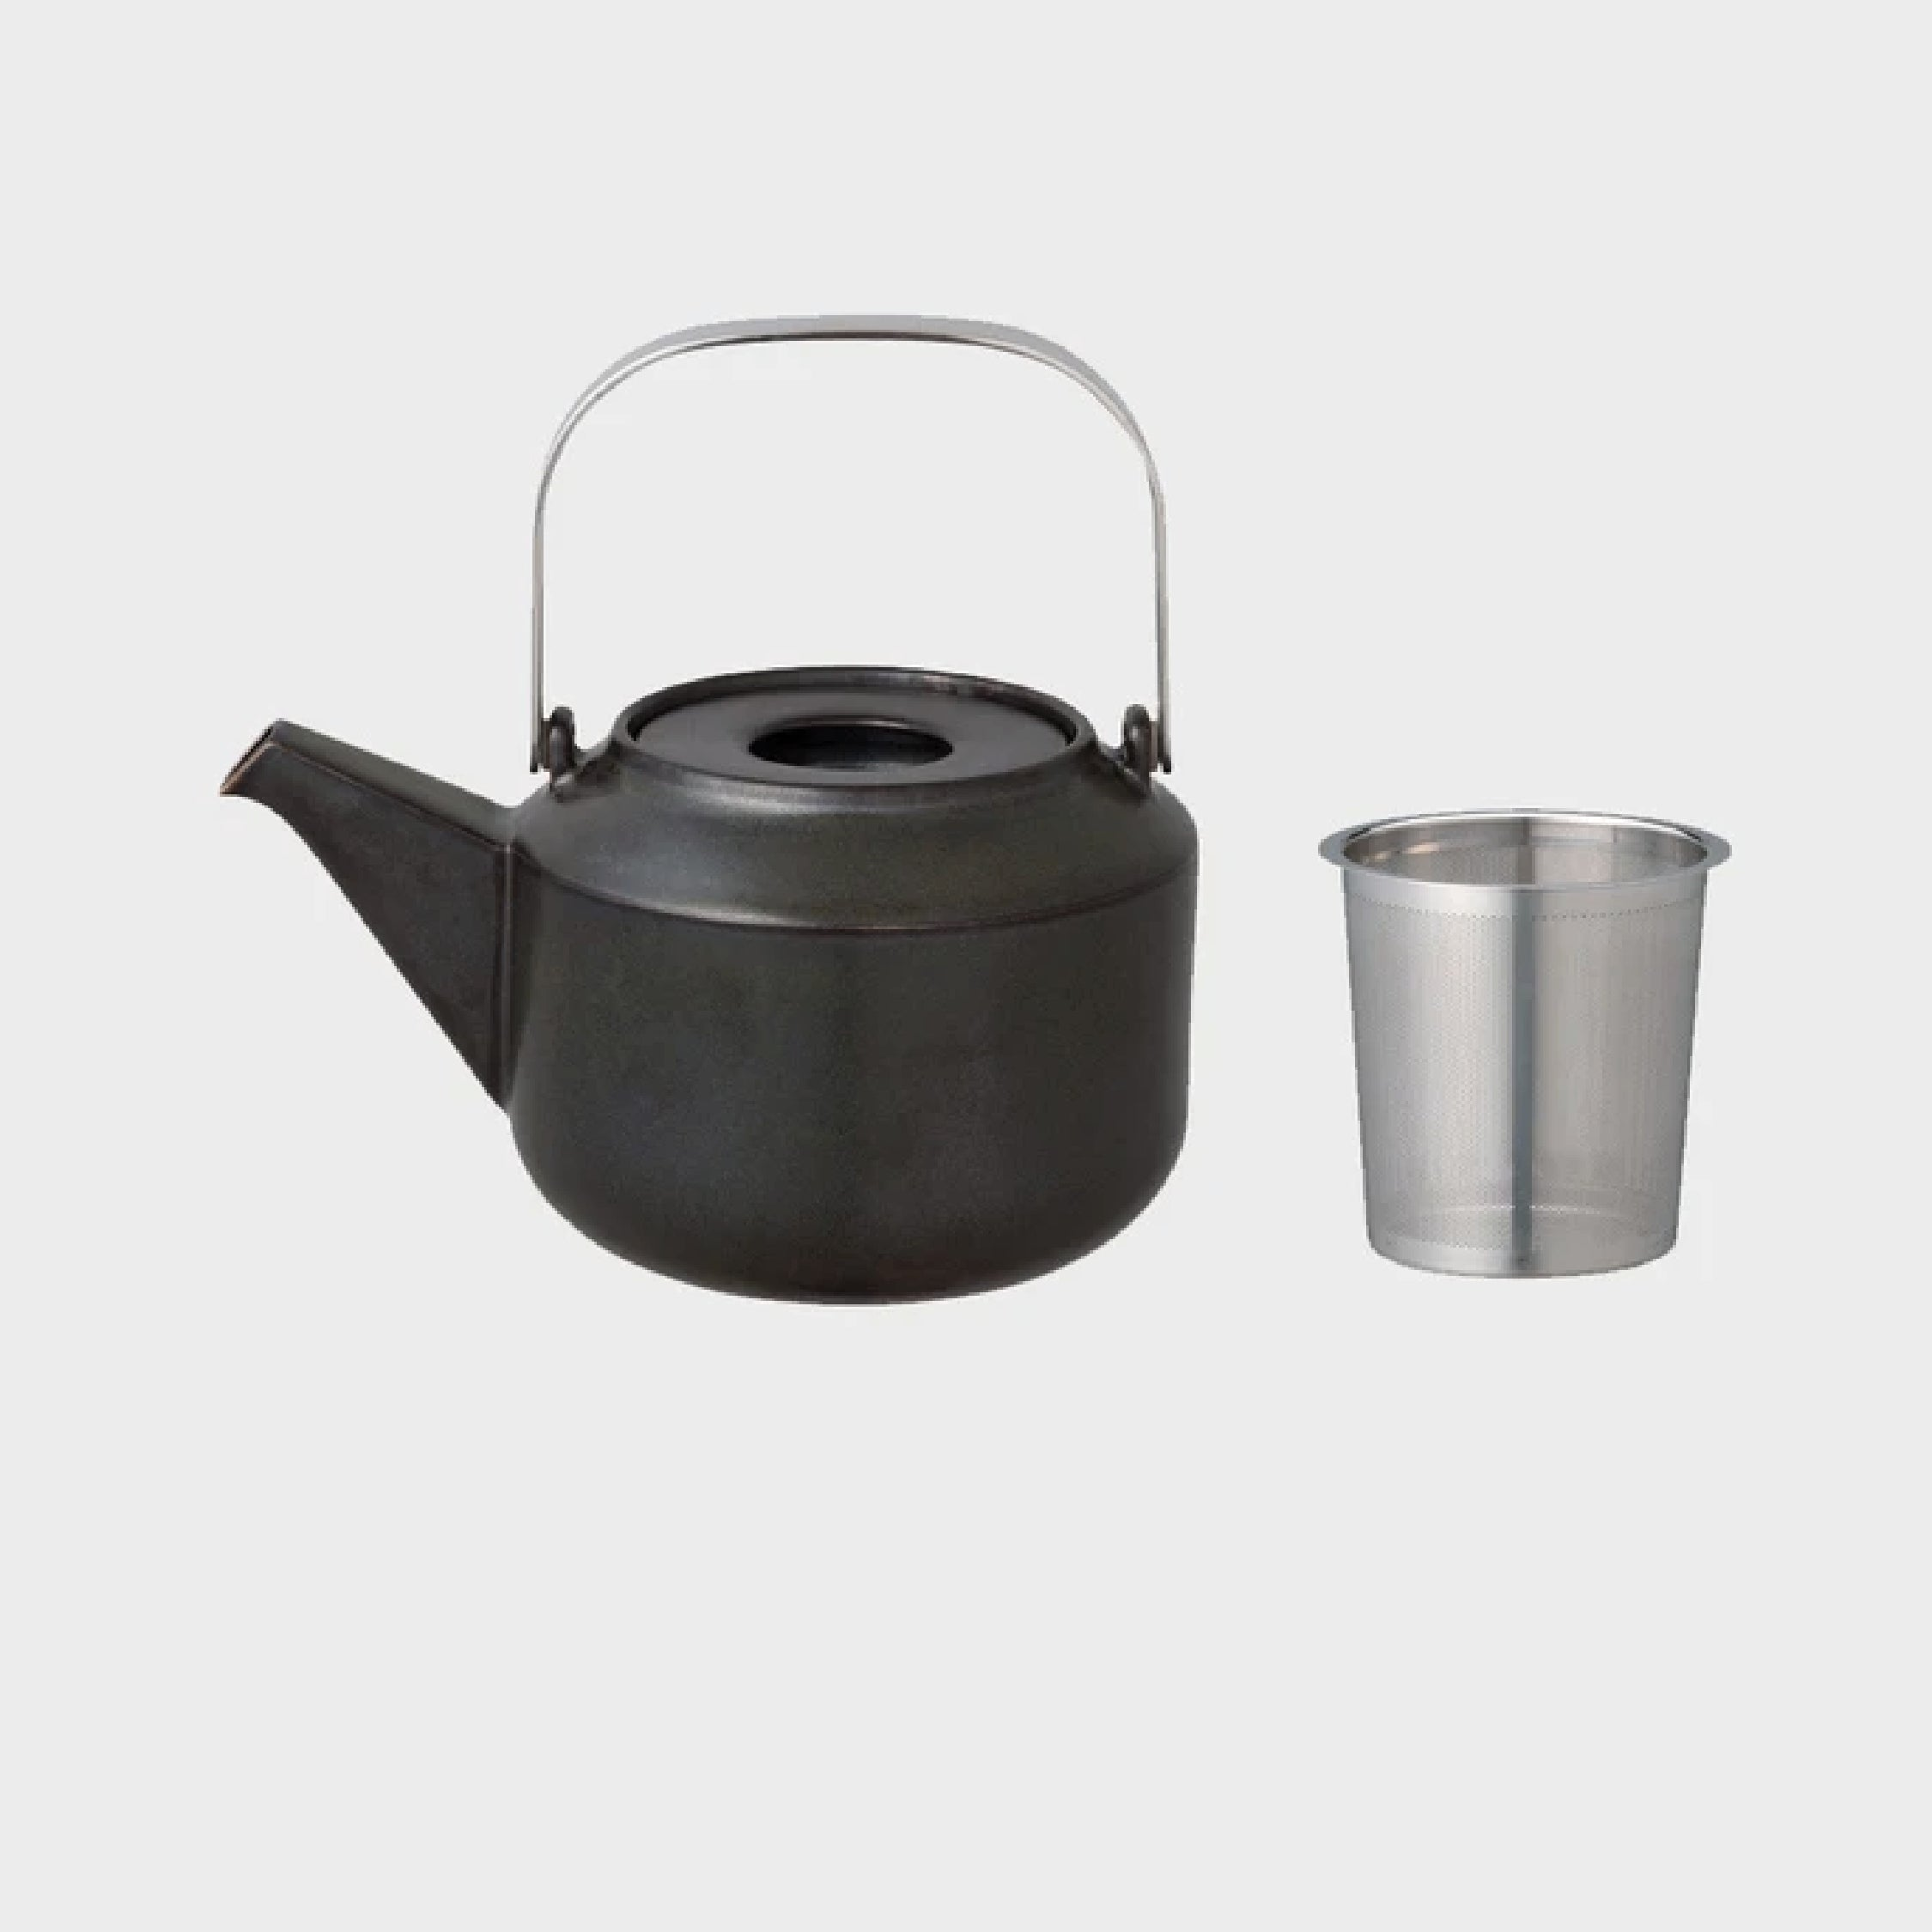 Kinto - Leaves to Tea 600ml Teapot in Black